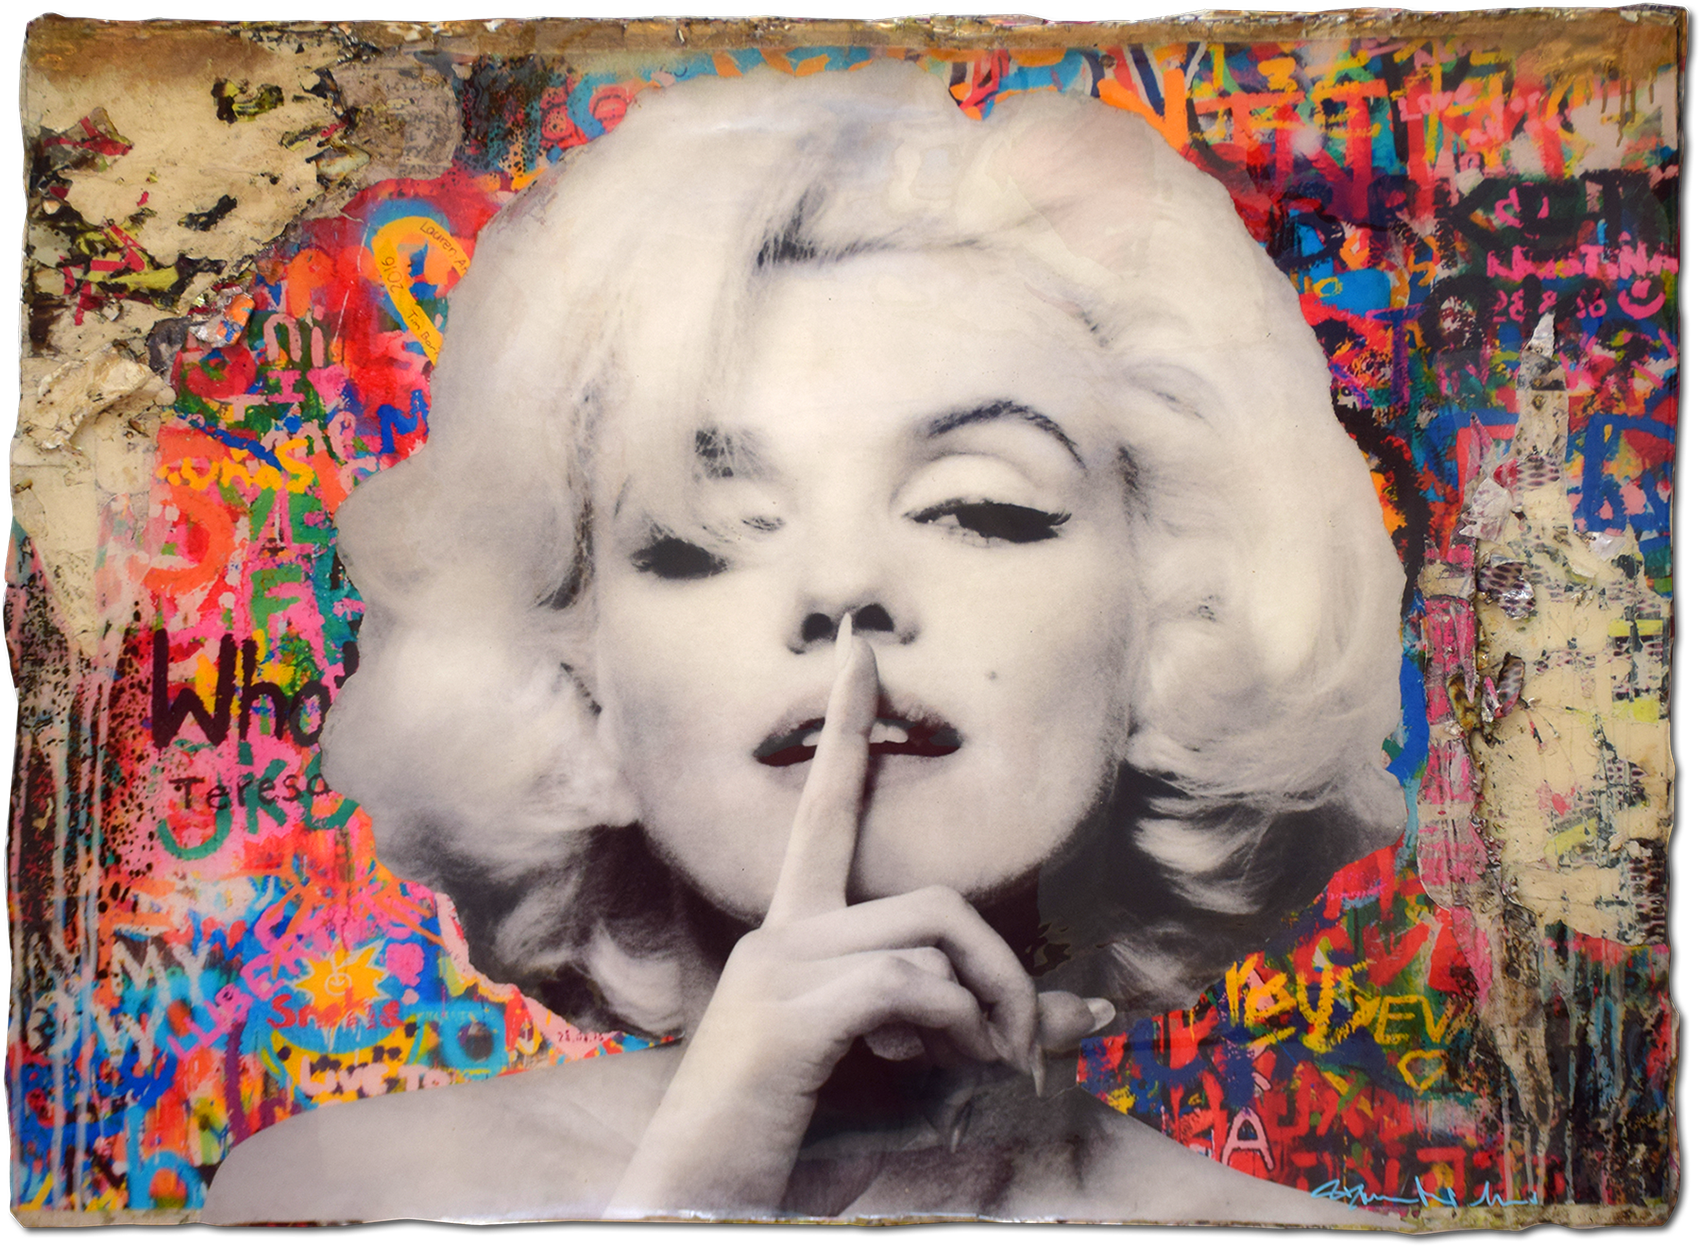 Bram Reijnders - Marilyn ... No more Bla bla , 8029-012-468